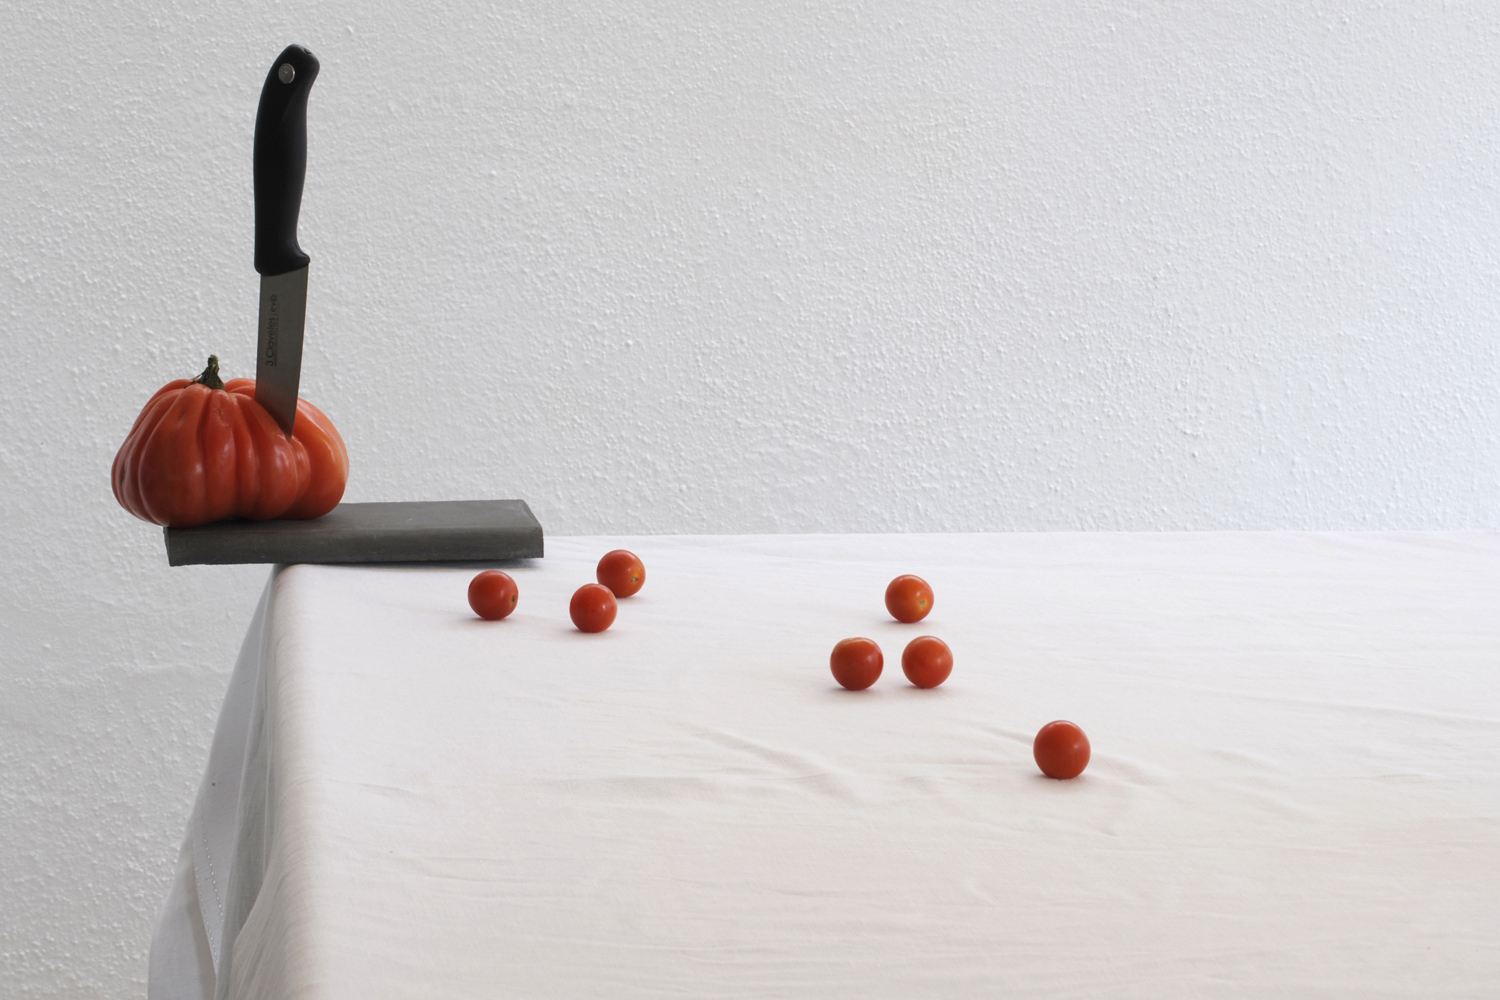 La tomatina contemporary still life photography